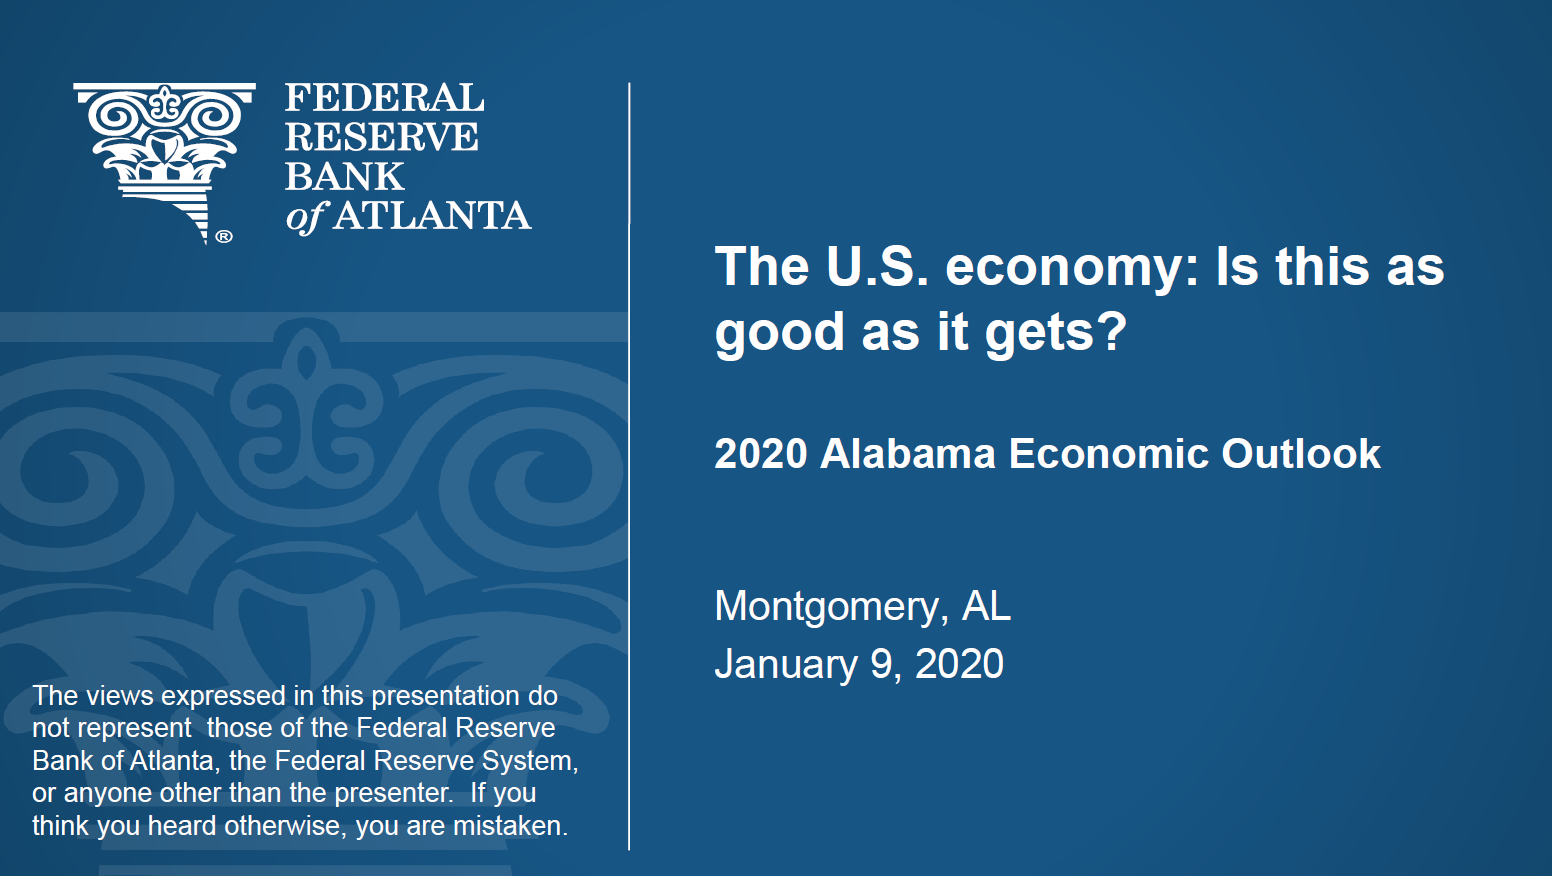 The U.S. Economy: Is this as good as it gets? Presentation 2020